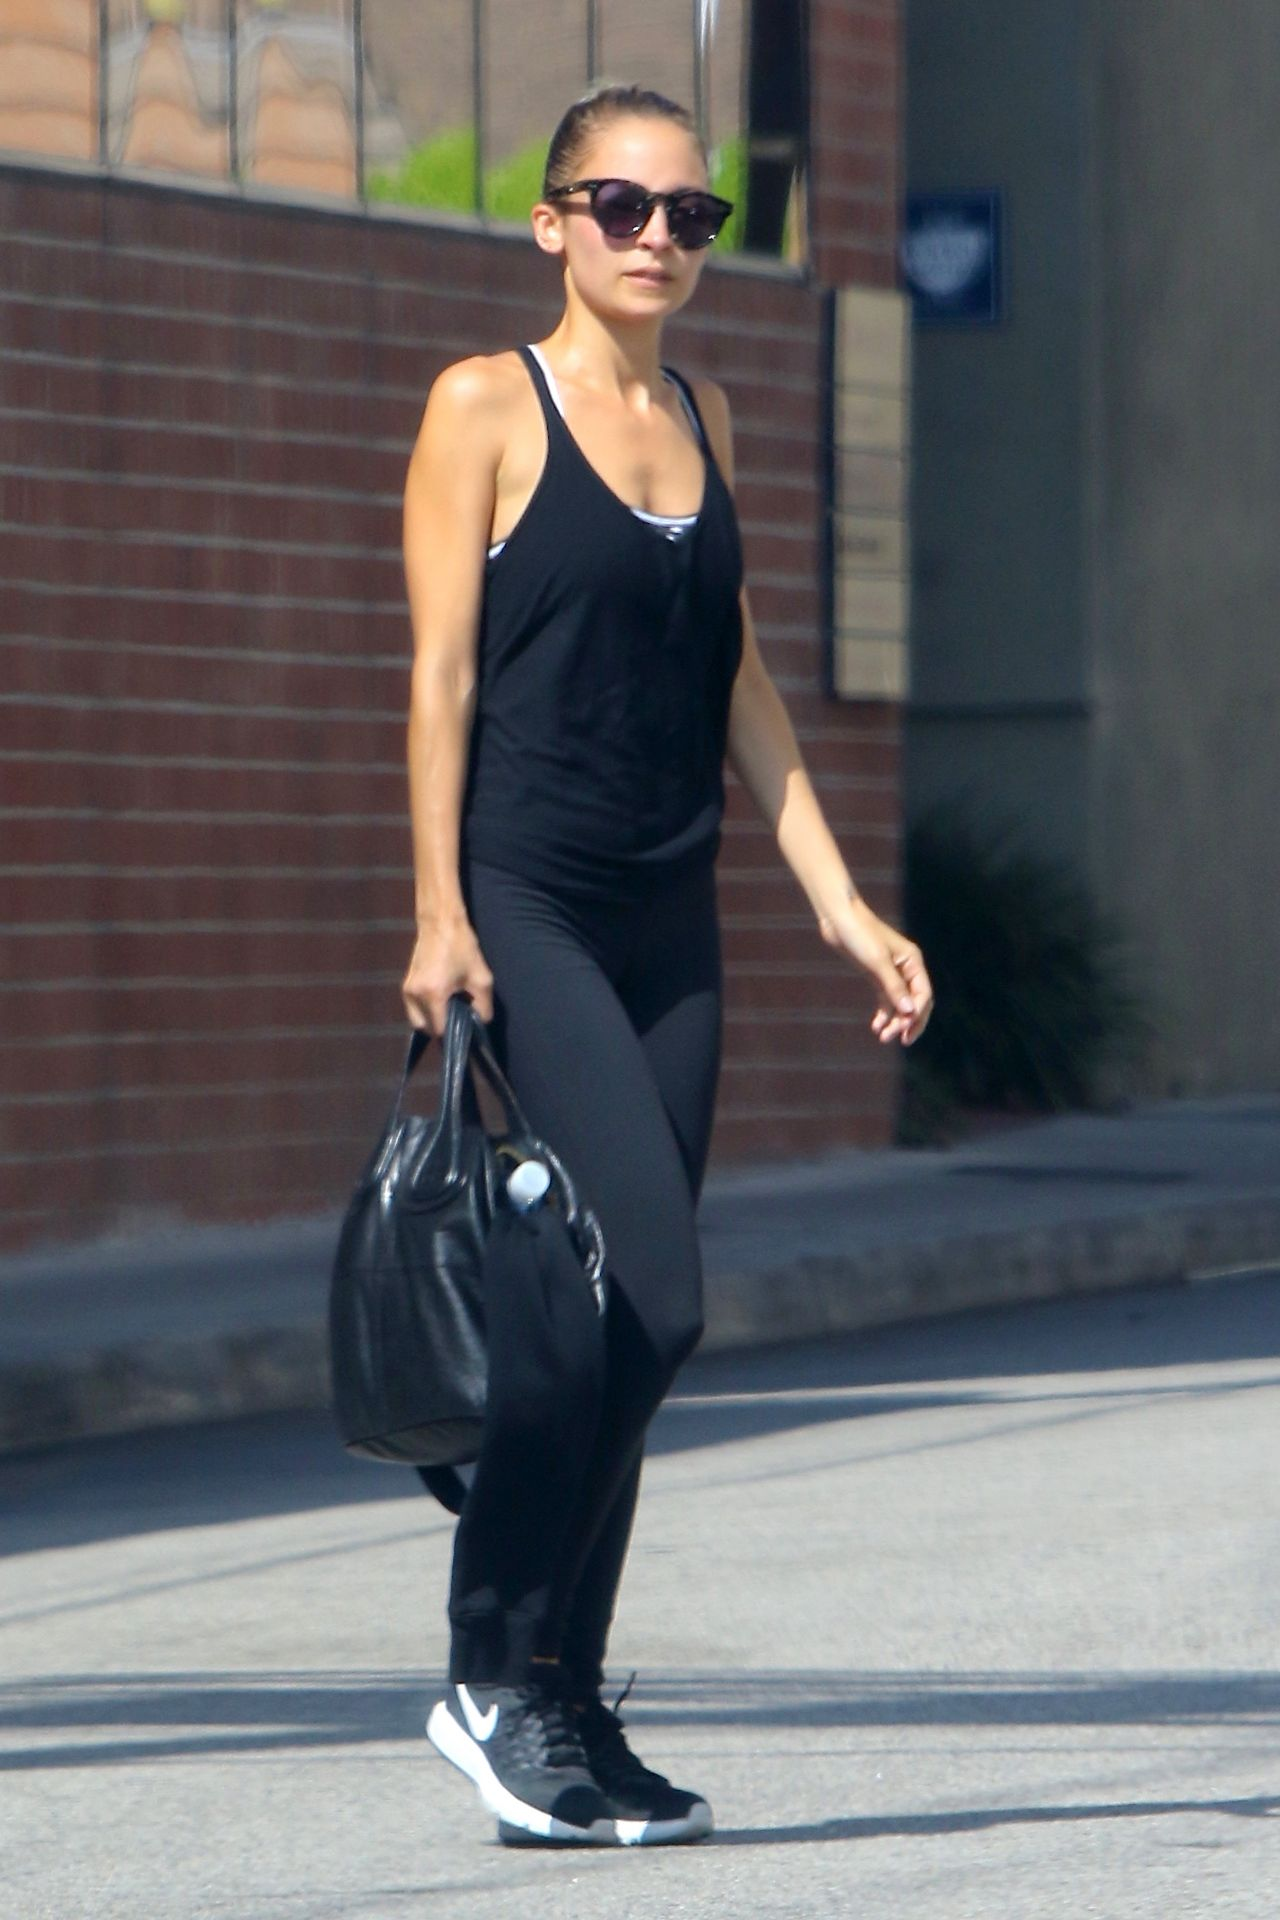 Nicole Richie Arriving For Her Morning Workout In Studio City 8 11